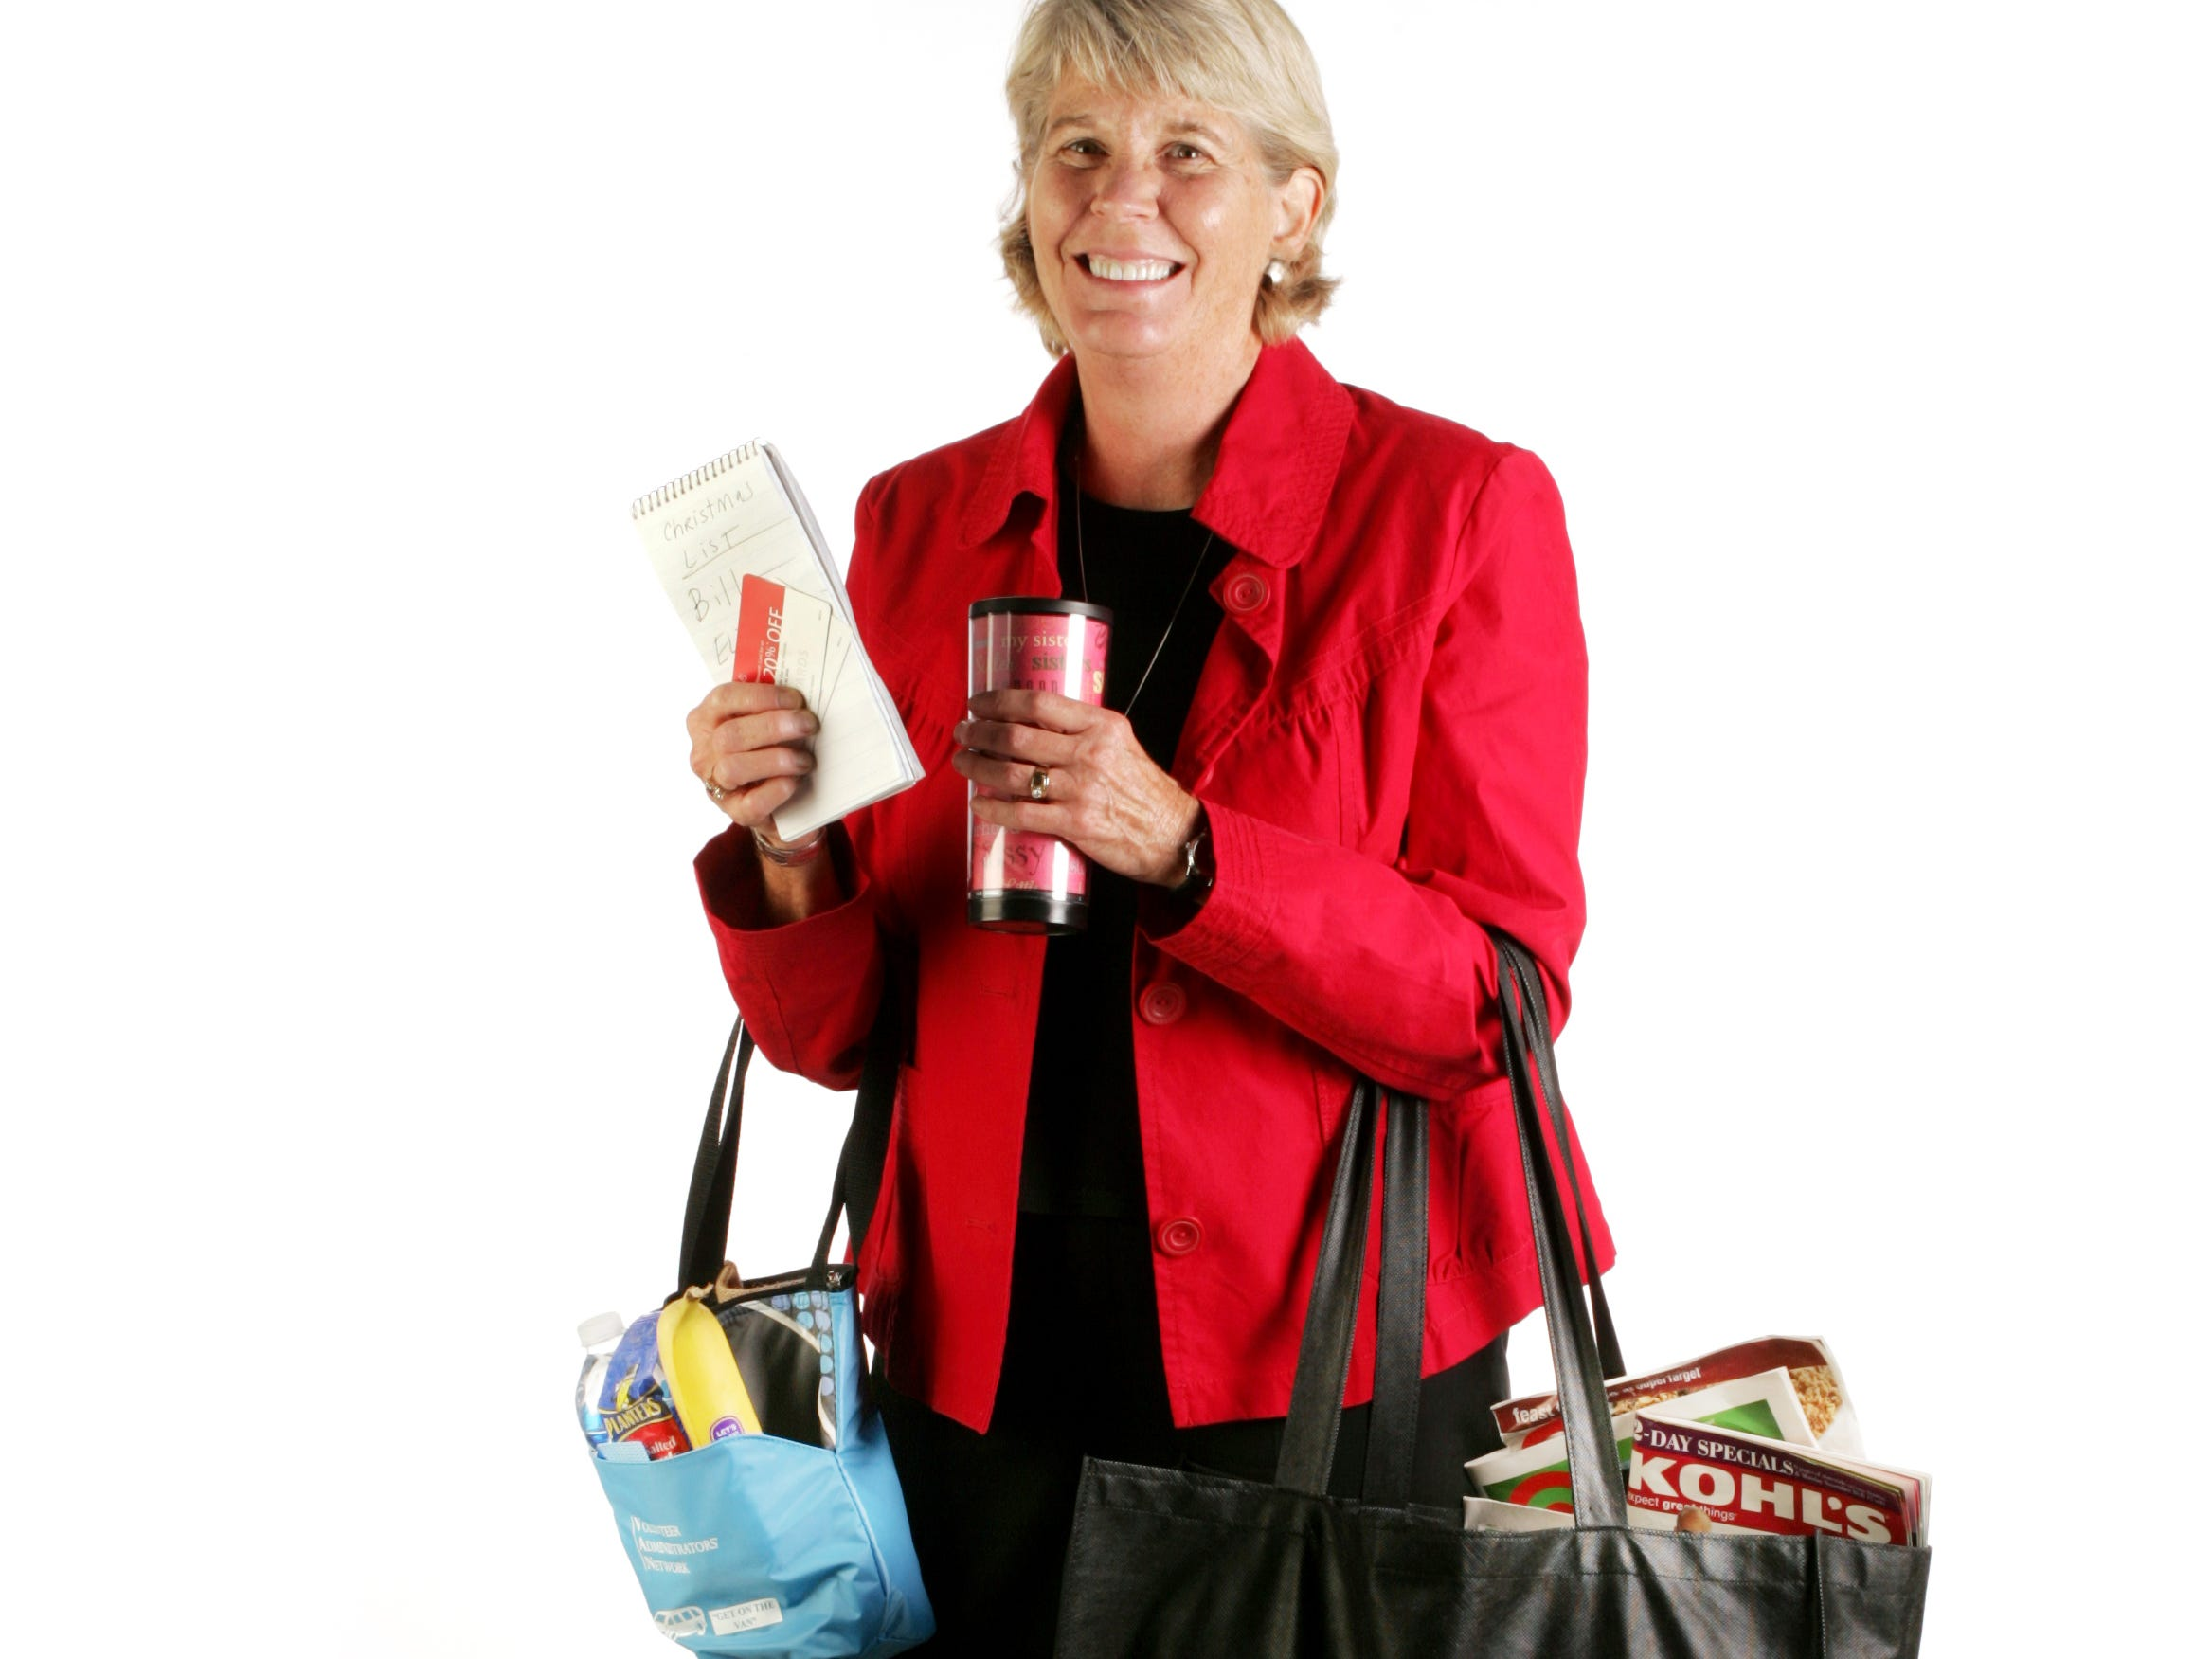 With her snacks, coupons, lists, gift cards and coffee, Ms. Cheap's Mary Hance, in the studio Nov. 18, 2008, shows that she's ready to go shopping on Black Friday.